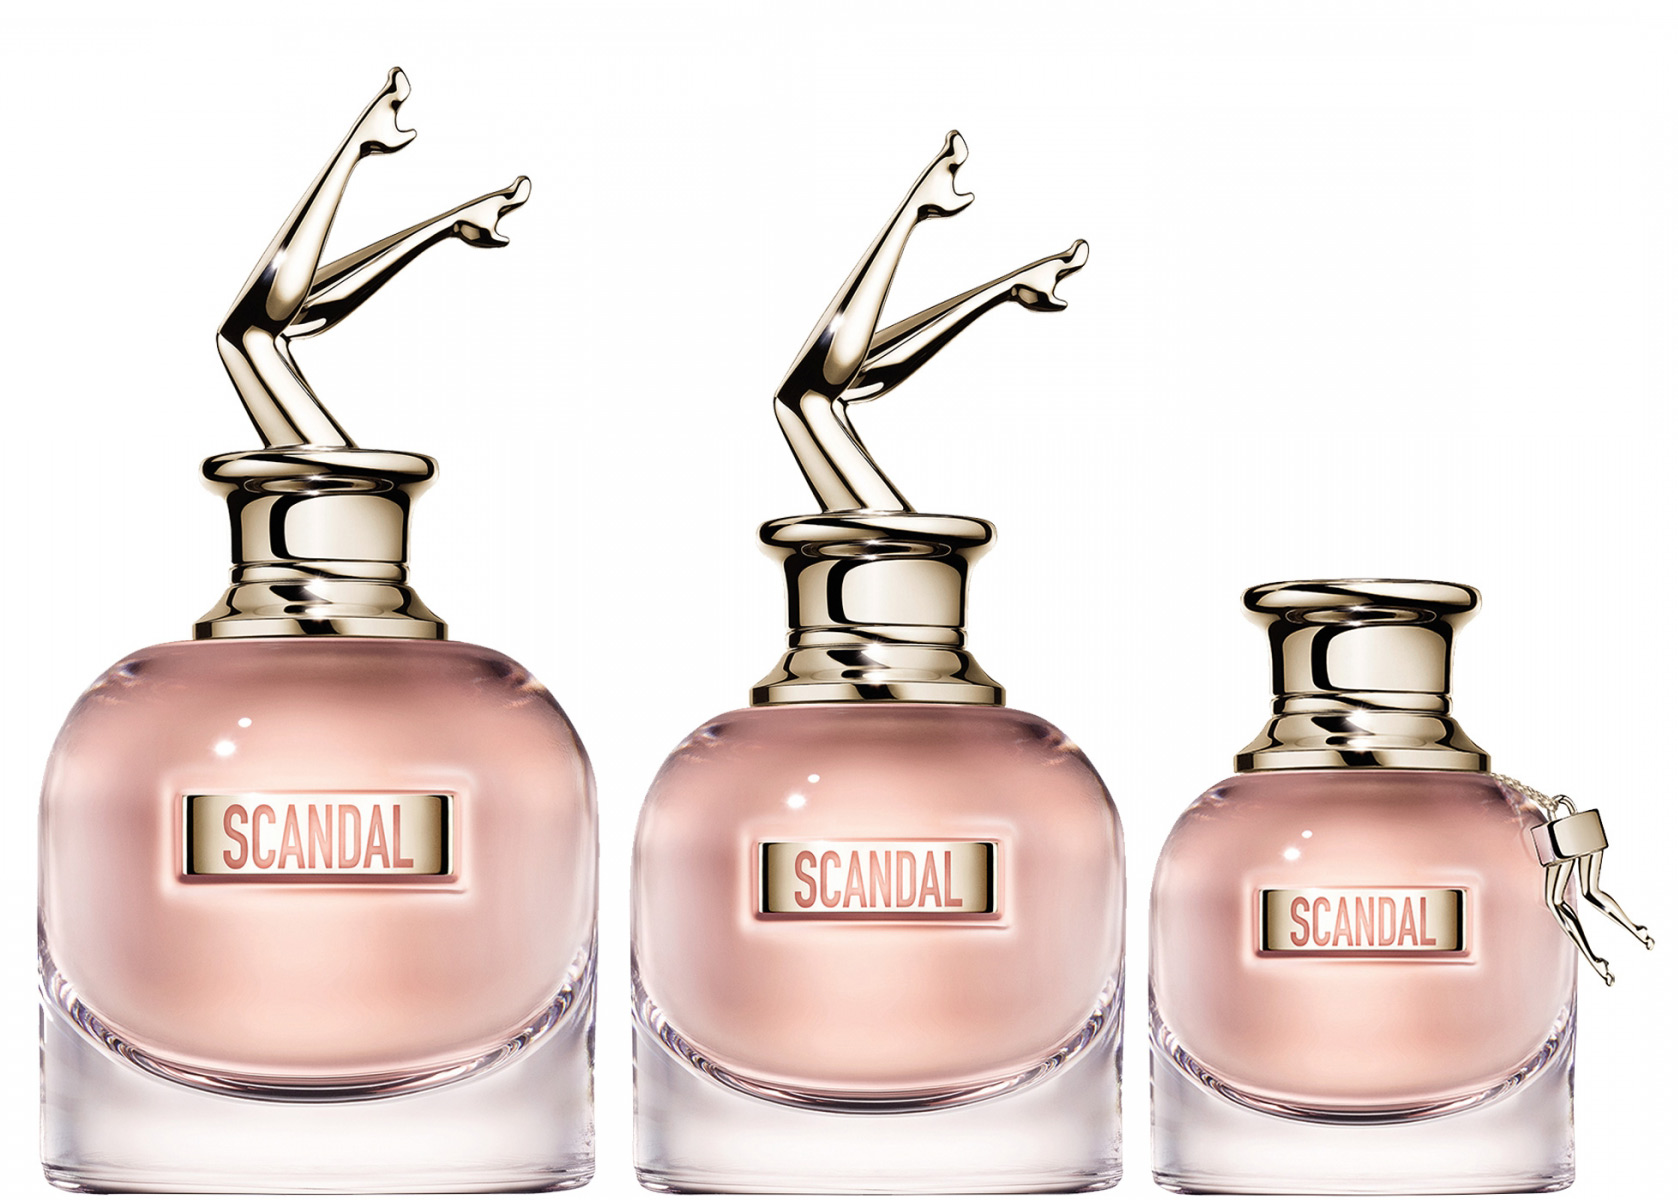 scandal jean paul gaultier parfum ein neues parfum f r frauen 2017. Black Bedroom Furniture Sets. Home Design Ideas